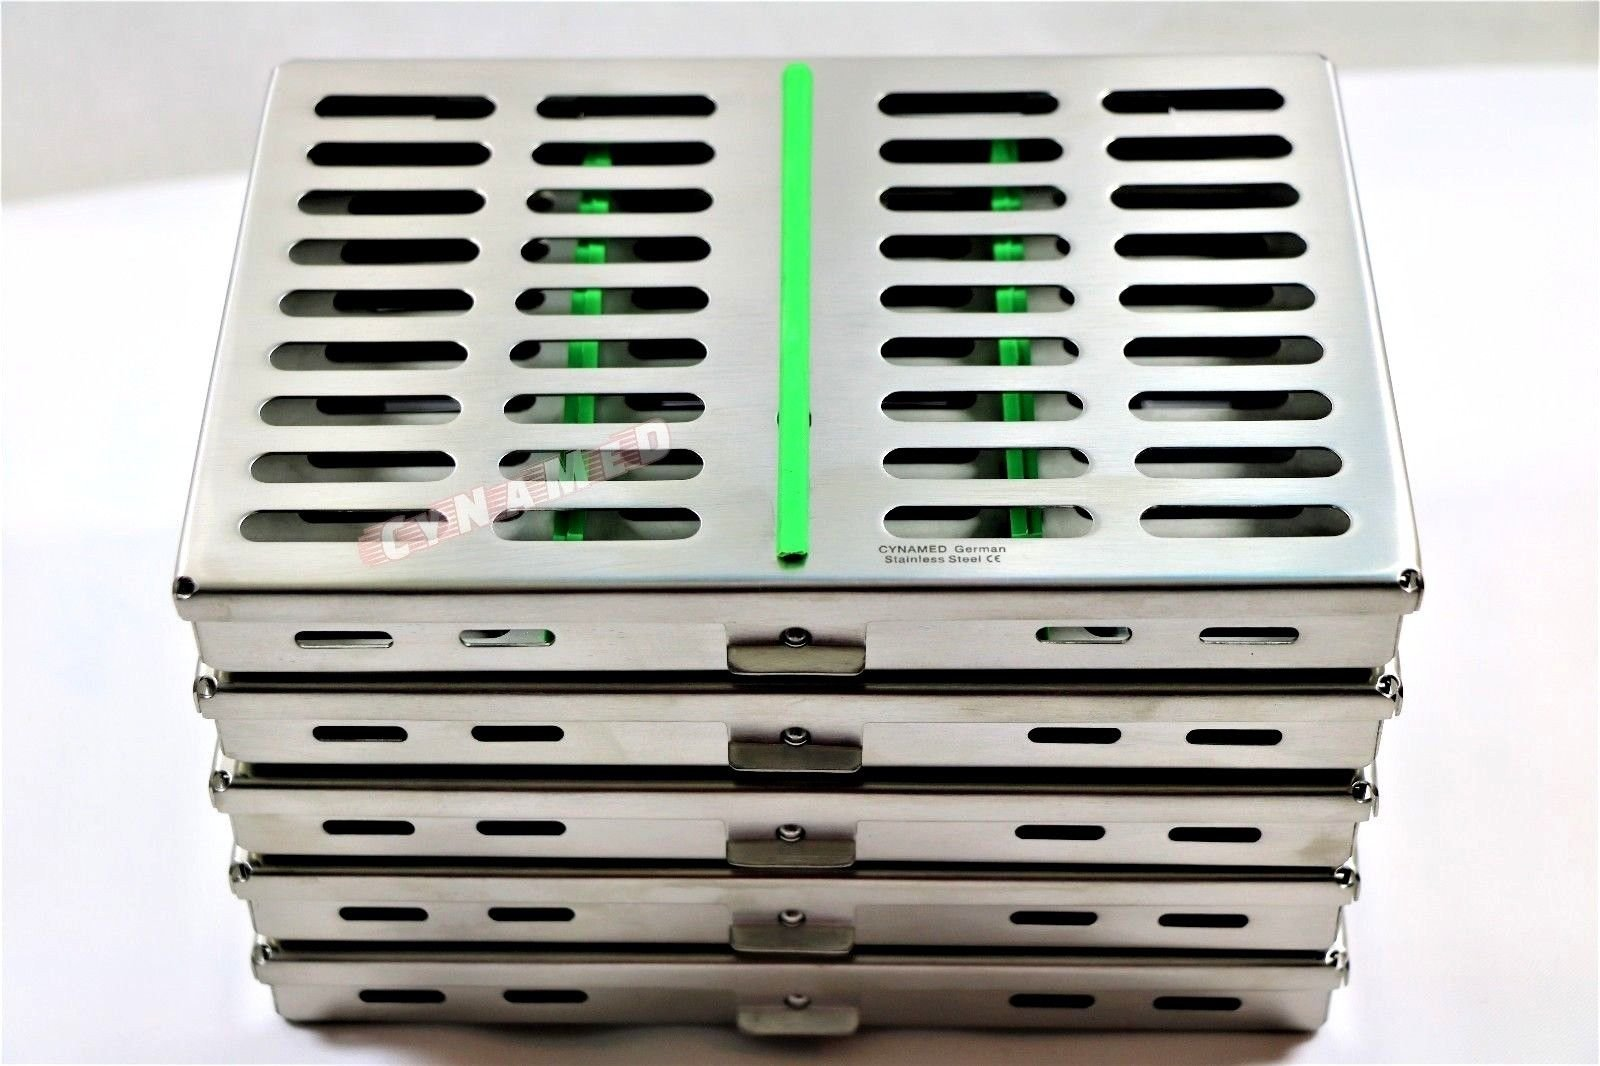 10 German Dental Surgical Autoclave Sterilization Cassette Box for 10 Instruments Green CYNAMED by CYNAMED (Image #2)